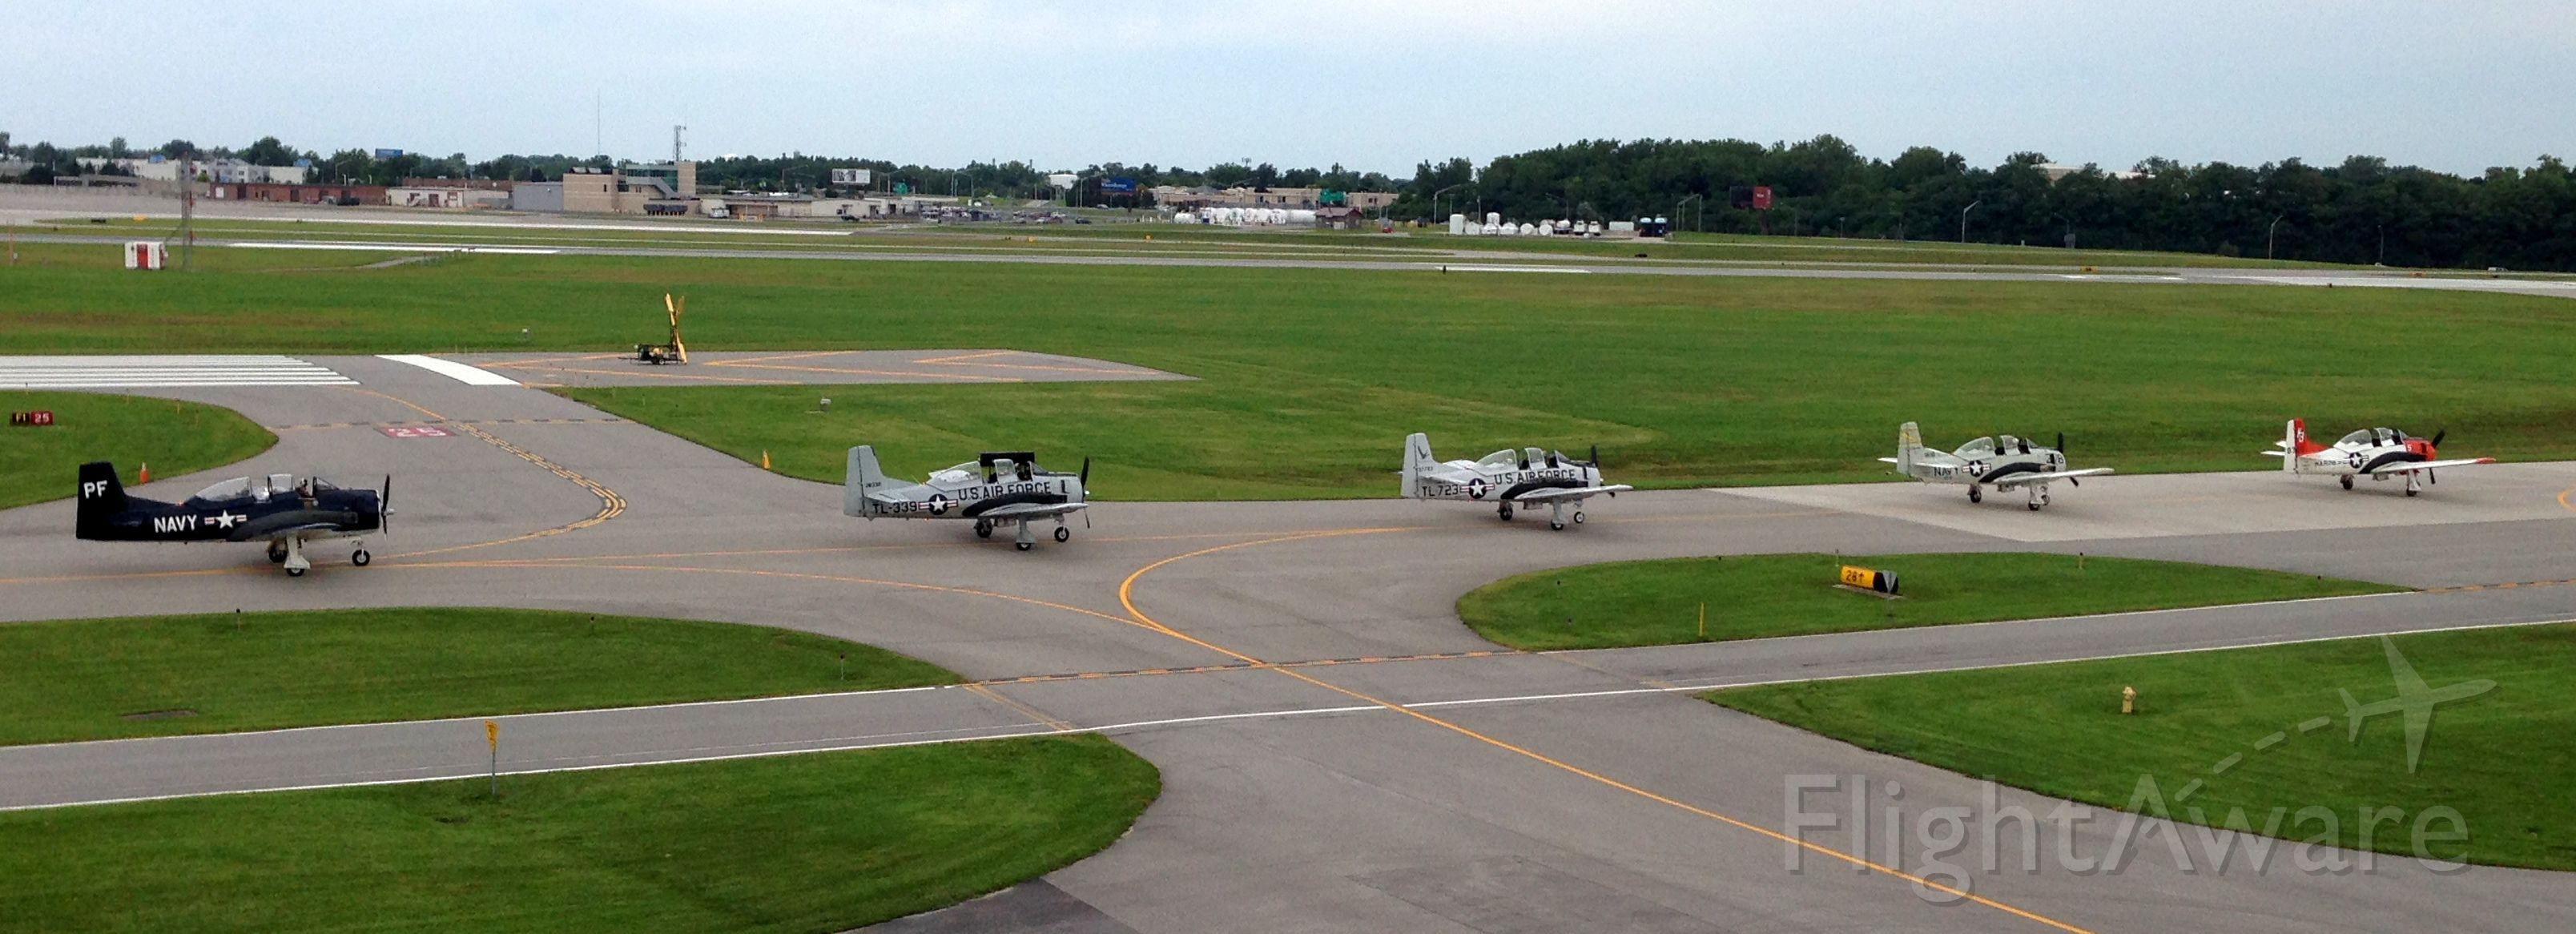 — — - Old school lineup at 2014 Rochester Air Show